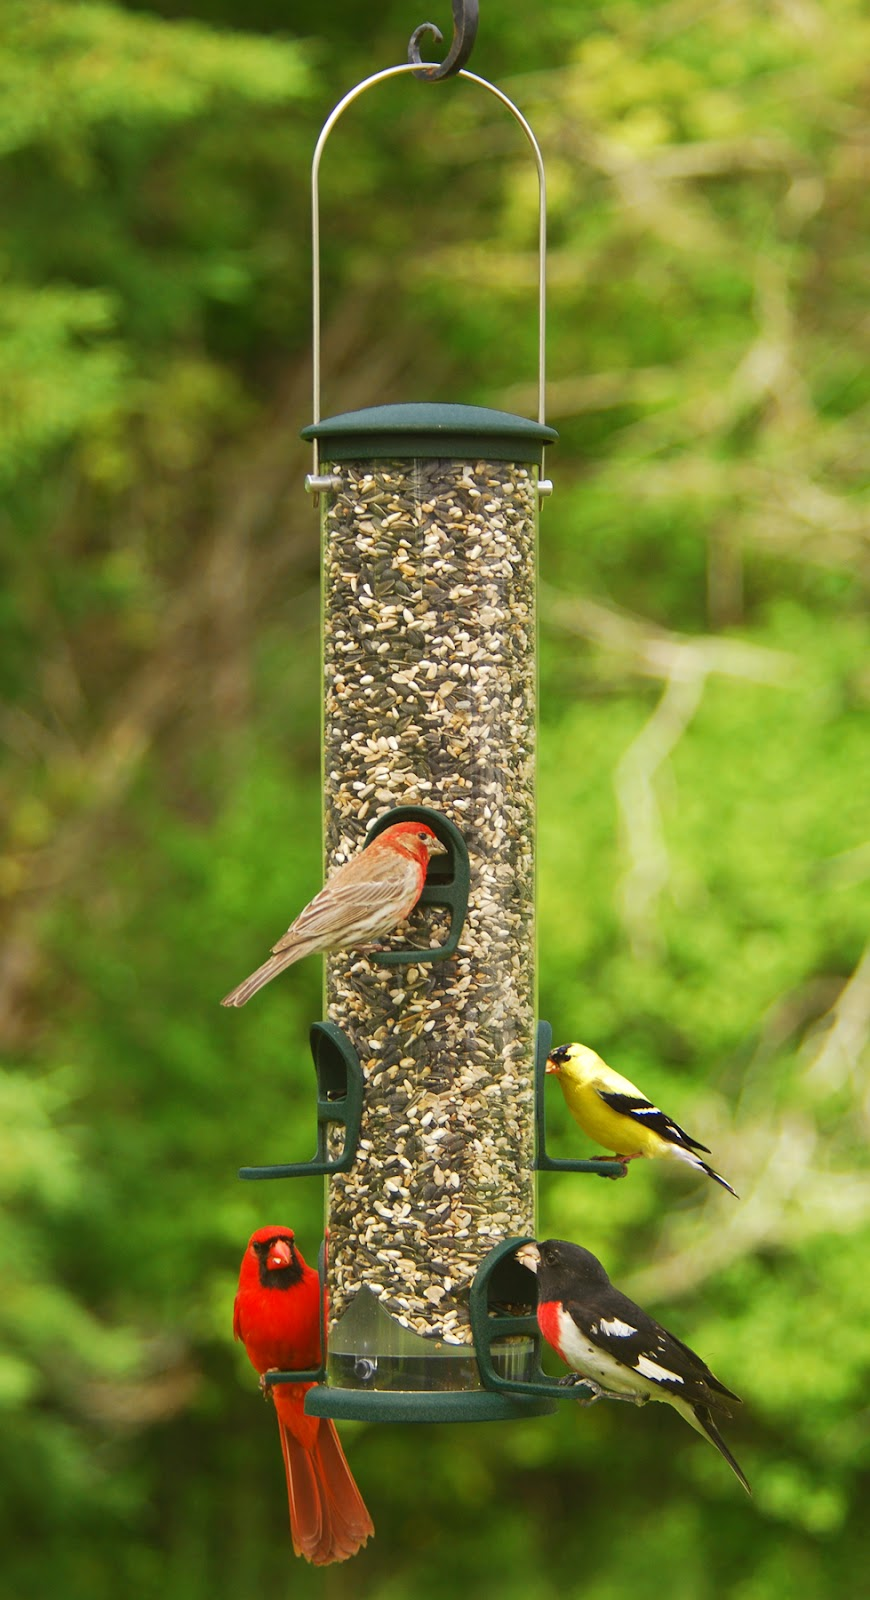 Wild Birds Unlimited: Can birds become dependent on bird feeders?